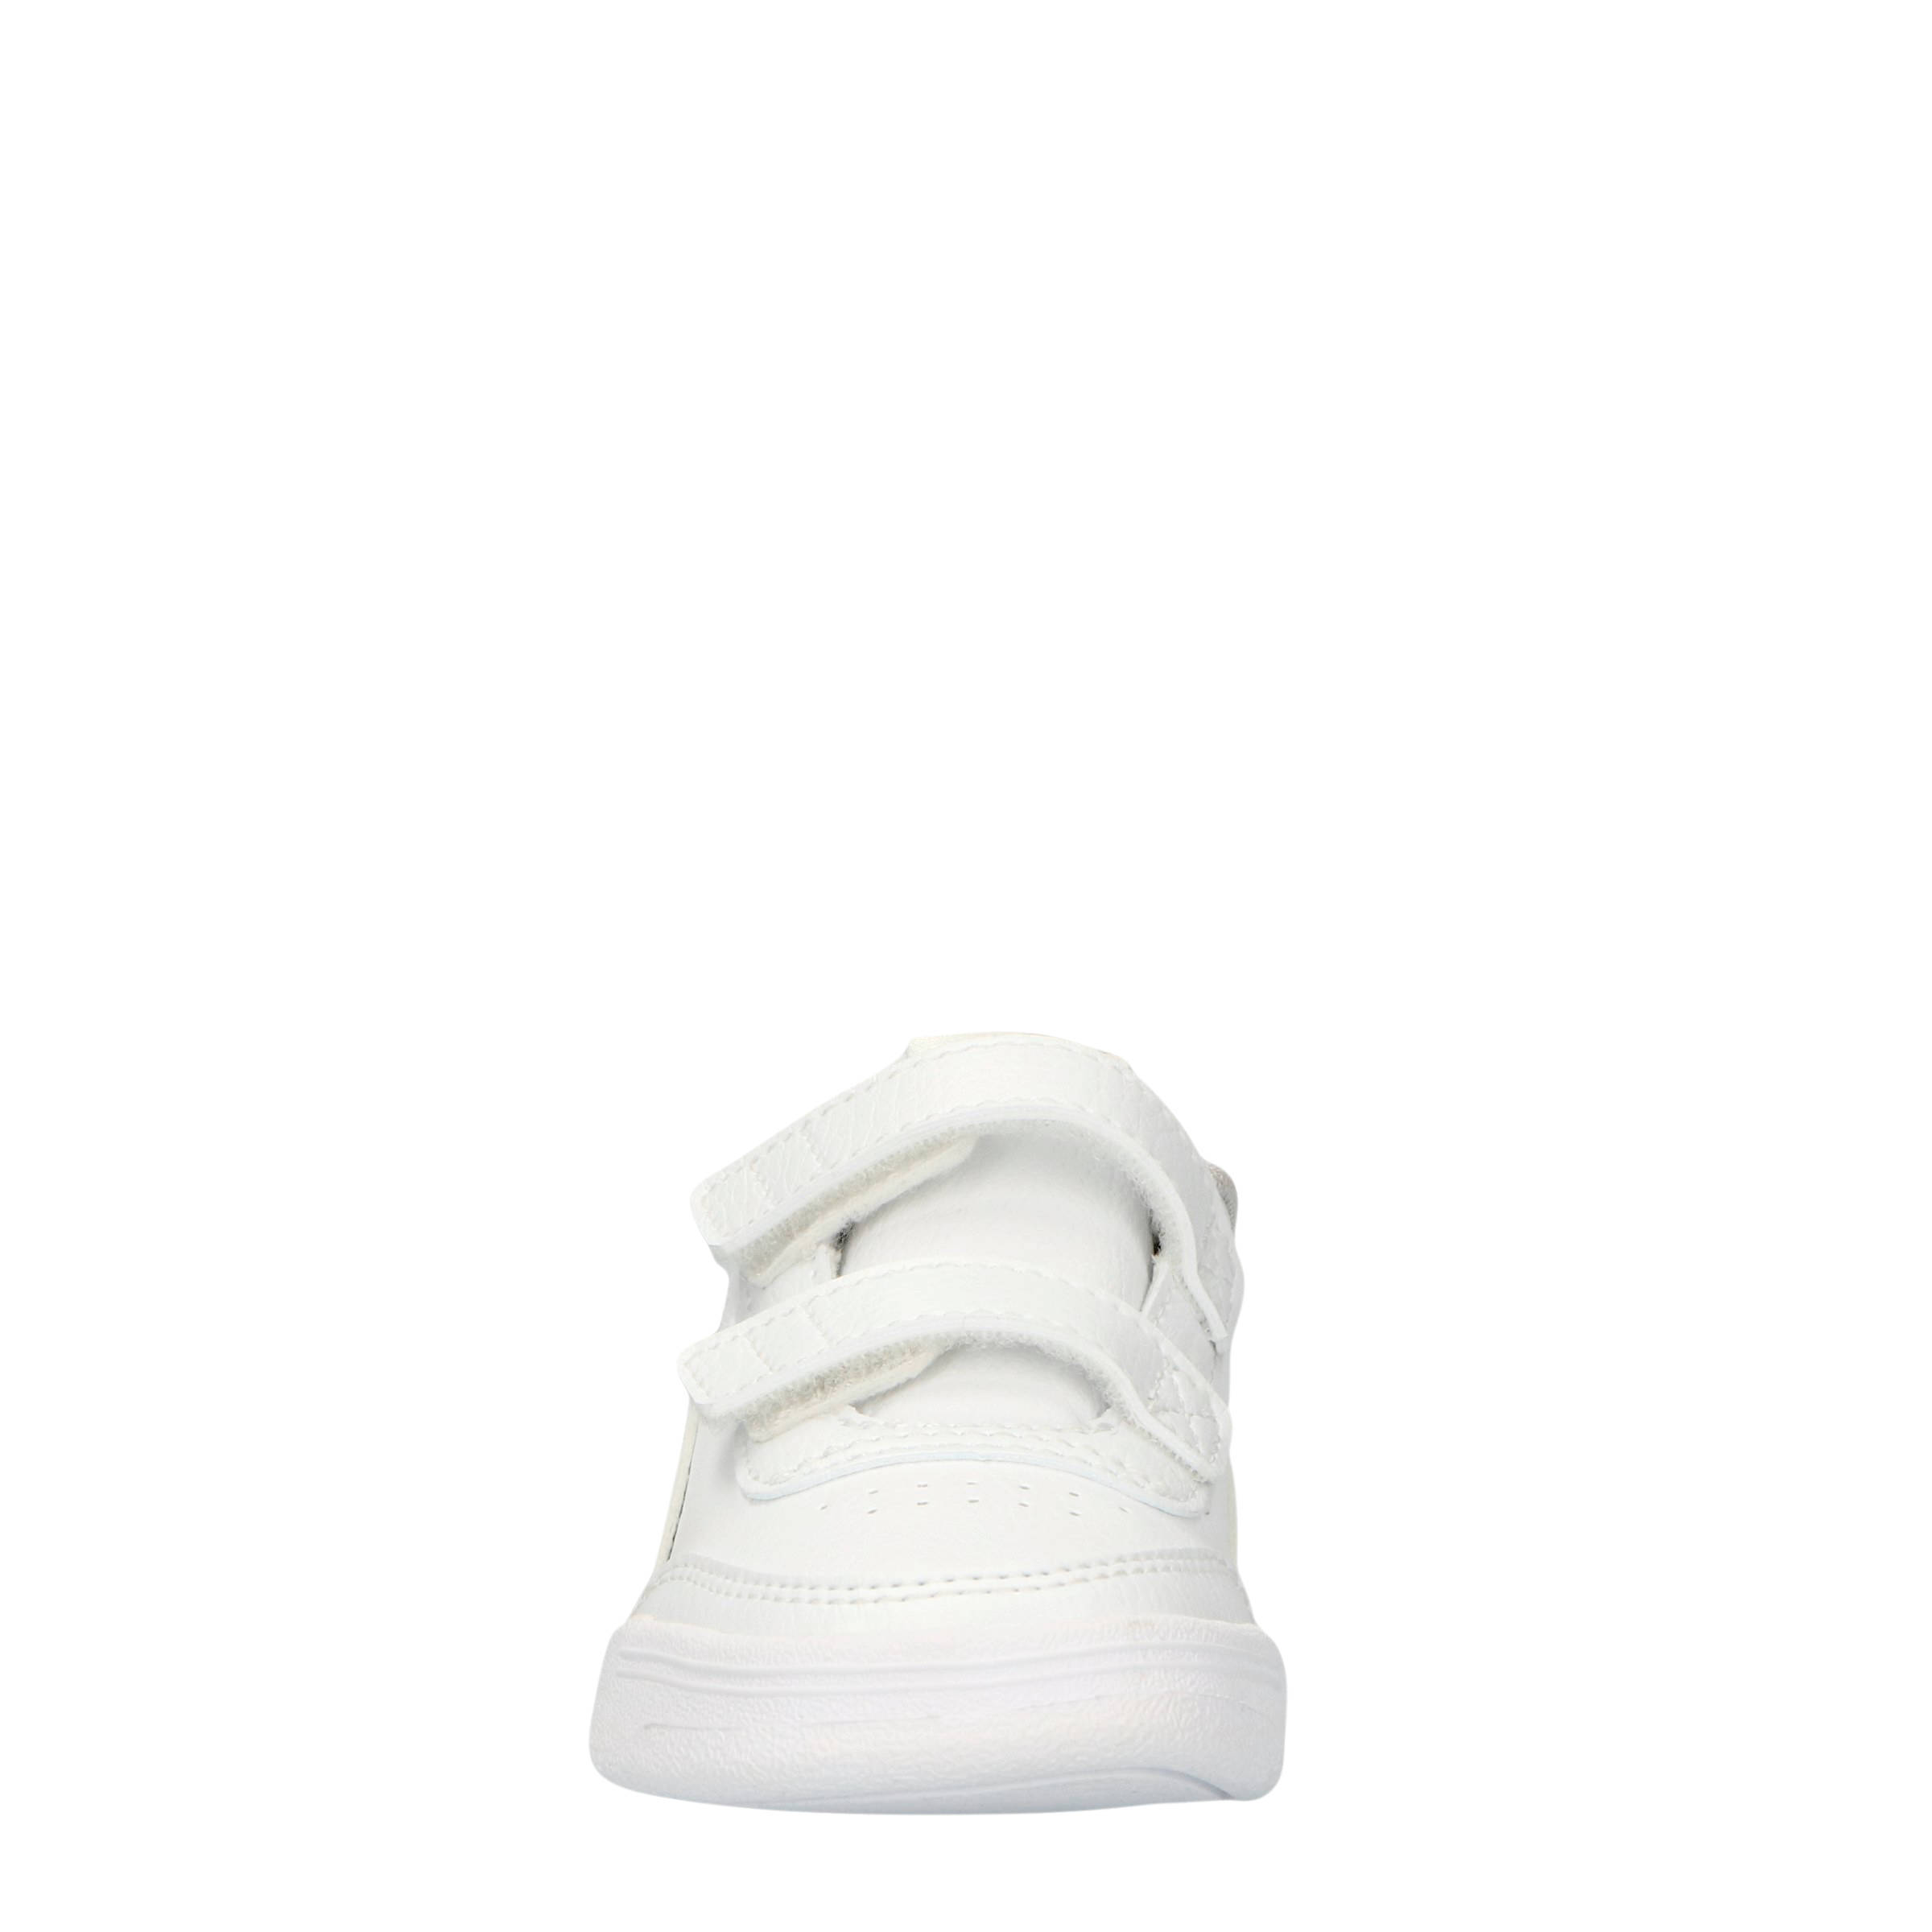 Puma Caracal V Inf sneakers wit | wehkamp